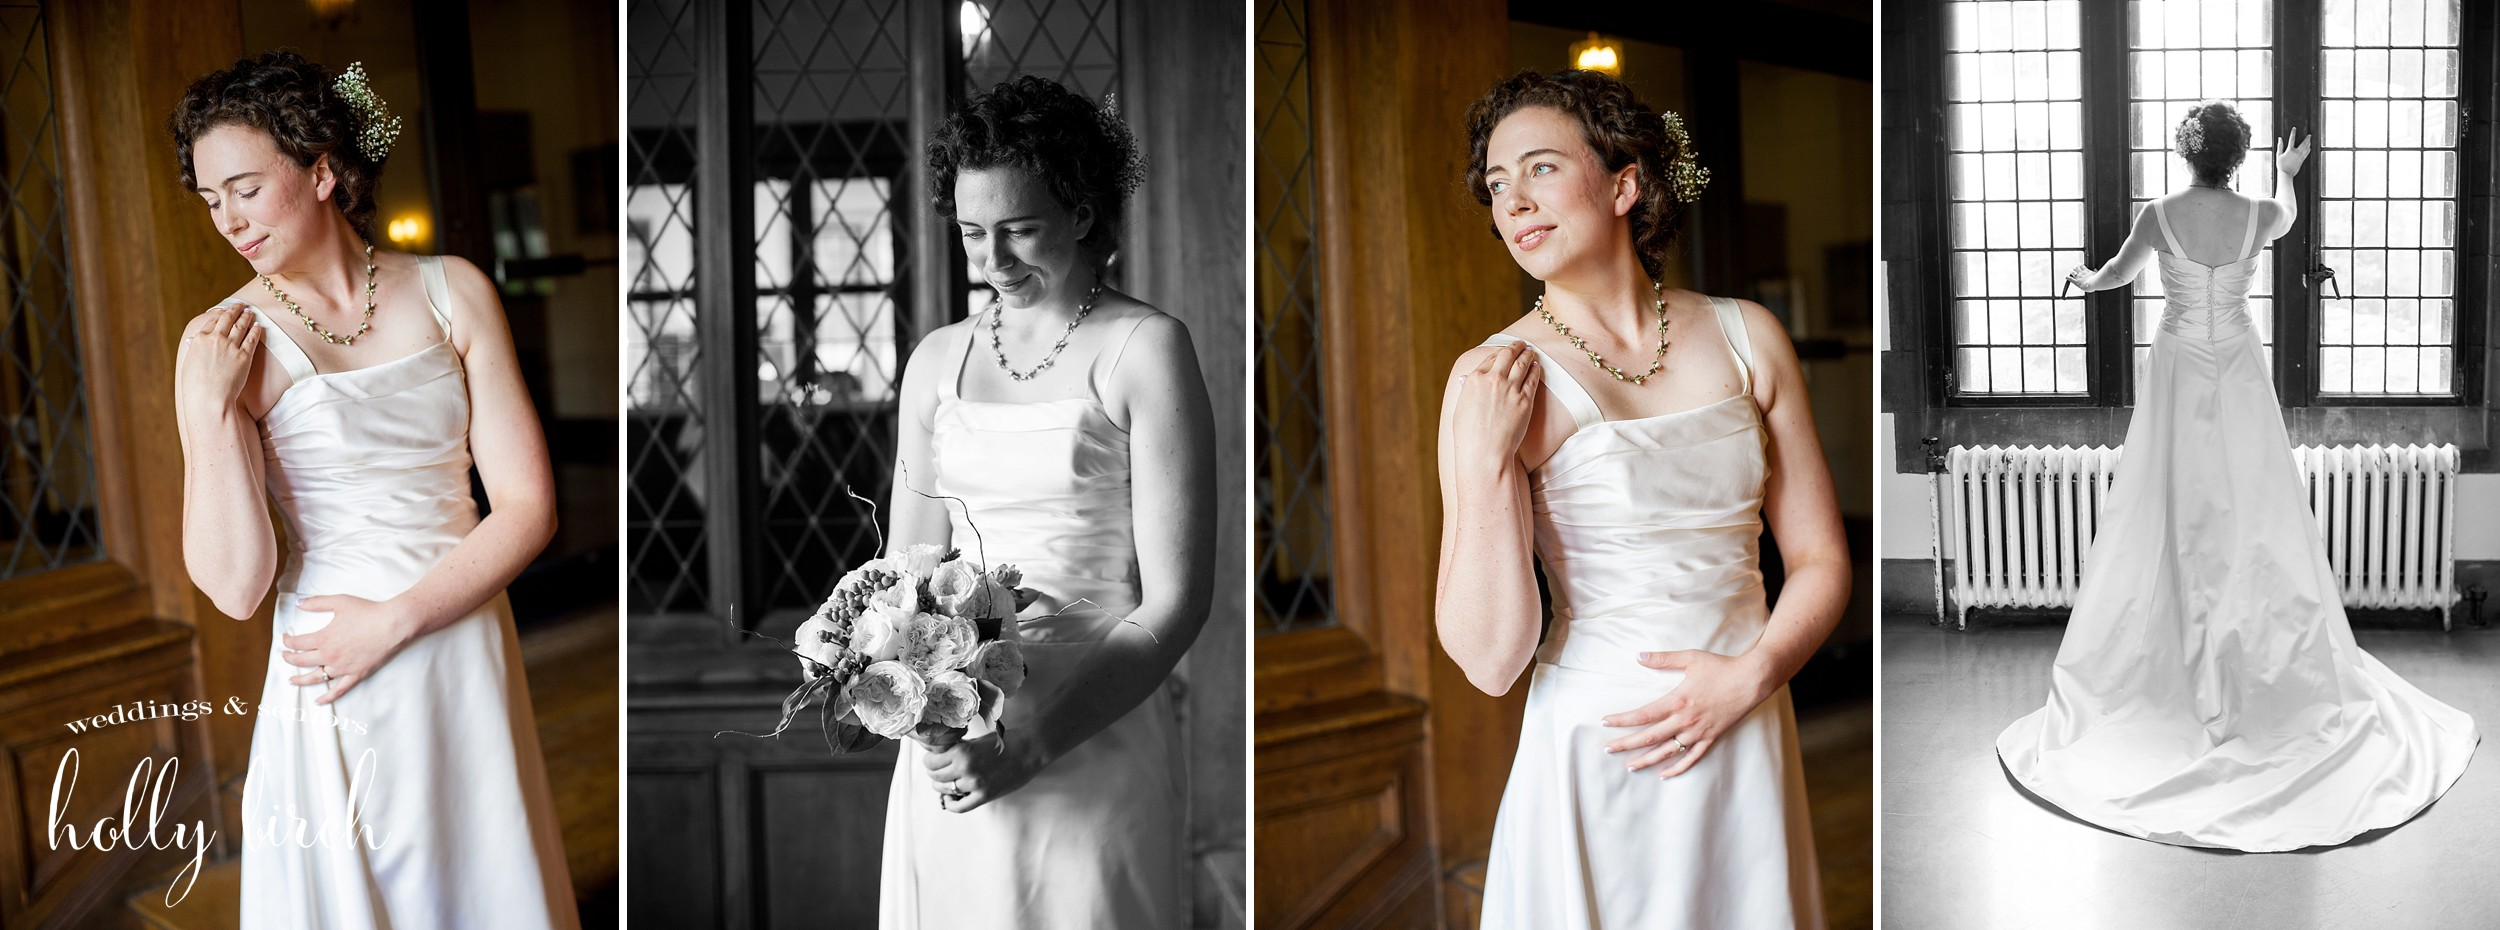 bridal portraits in window light